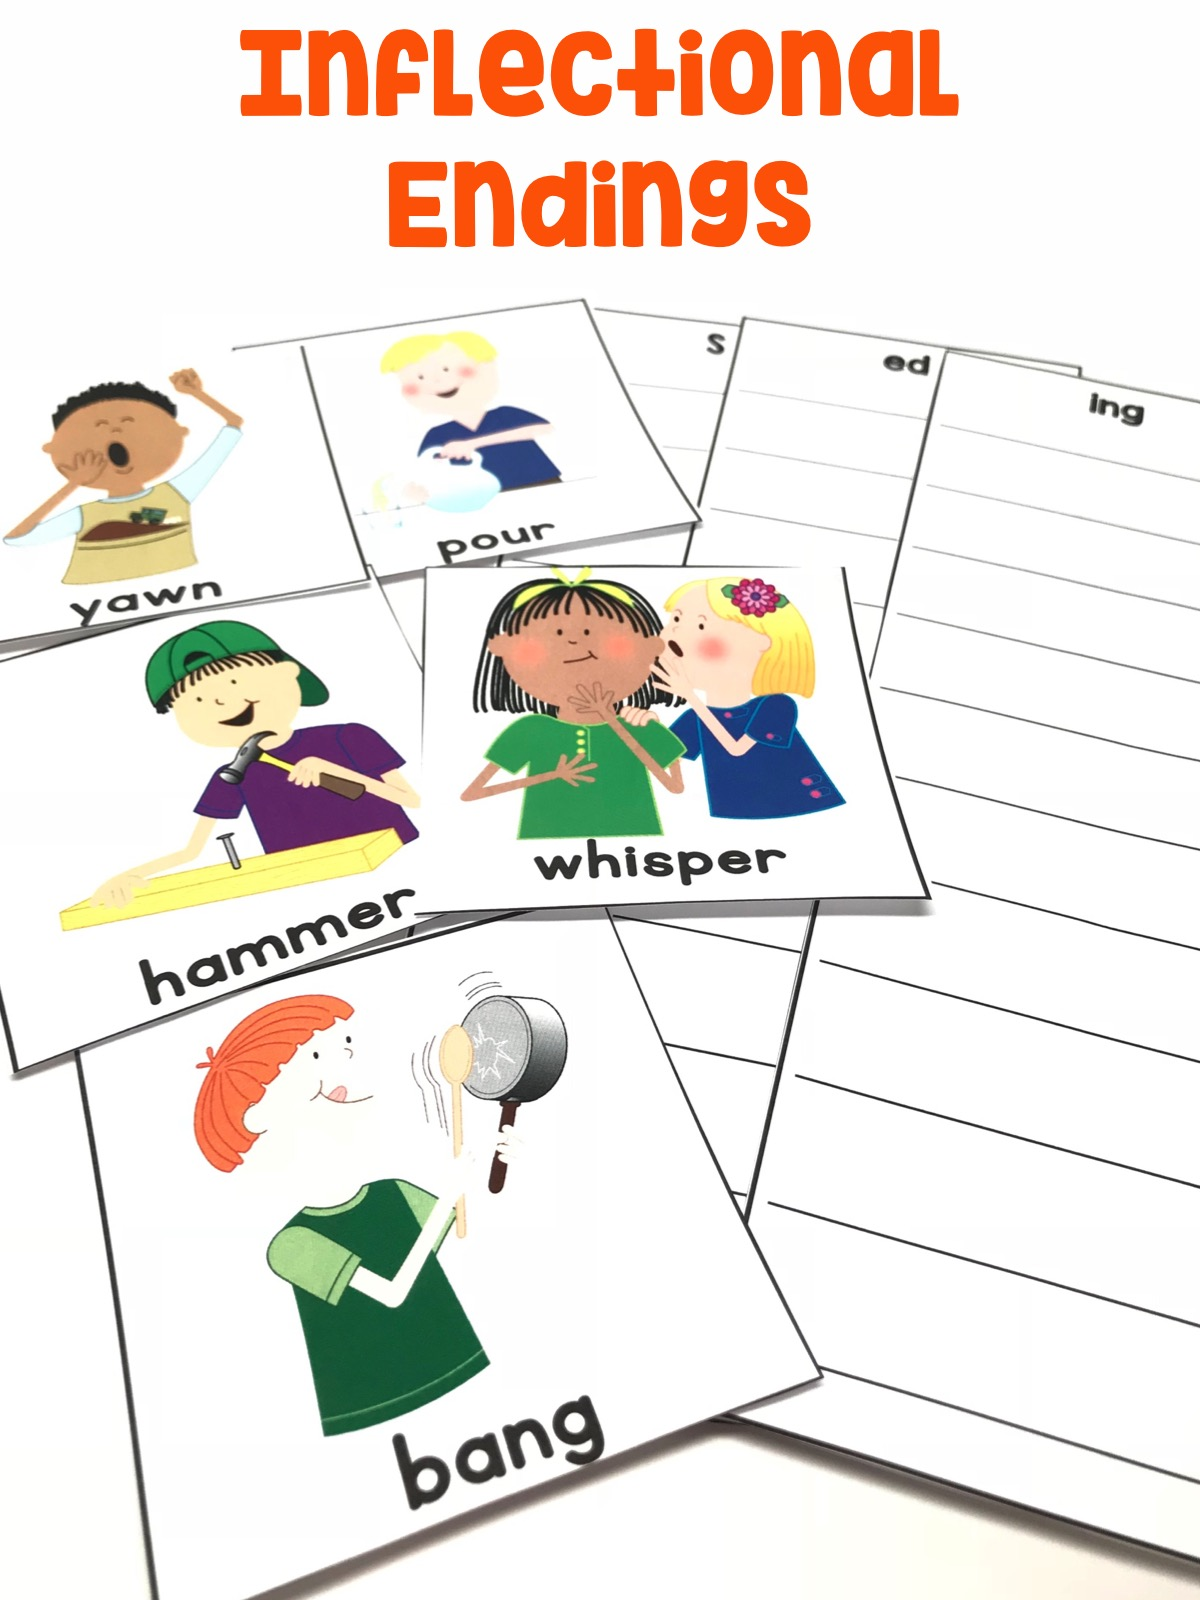 Students will change words using inflectional endings.